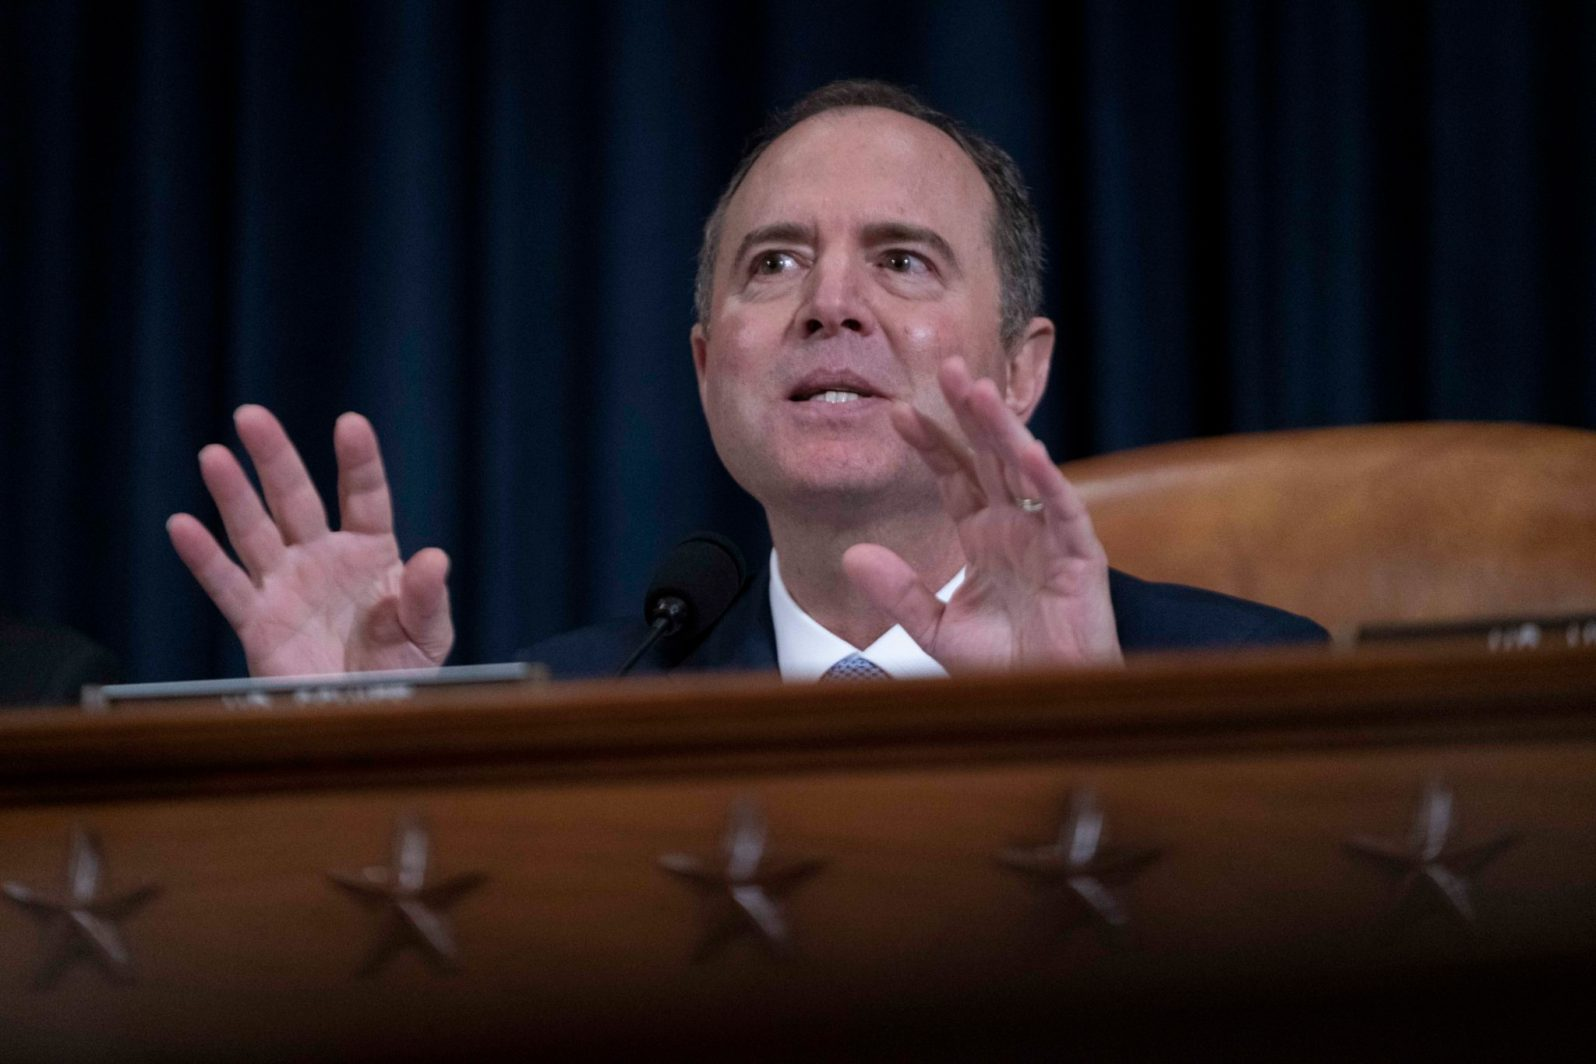 Chairman of the House Intelligence Committee ADAM SCHIFF (D-CA), gives final remarks during the hearing featuring the witness testimony of Dr. Fiona Hill and David Holmes, November 21, 2019